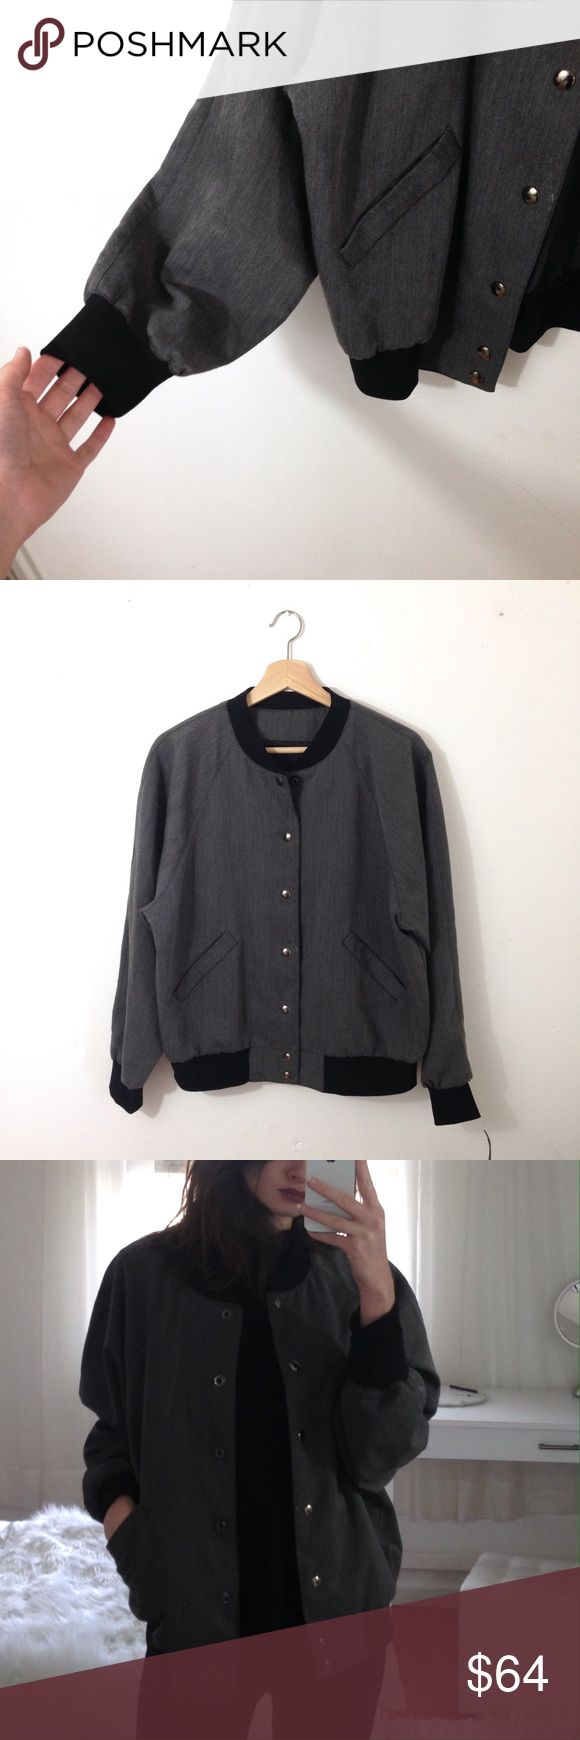 Grey Wool Bomber Jacket Adorable grey wool Bomber Jacket. Size M, snap buttons, two hip pockets. Black ribbed hem, sleeve cuffs, and neckline. Perfect condition. Gunmetal buttons Topshop Jackets & Coats